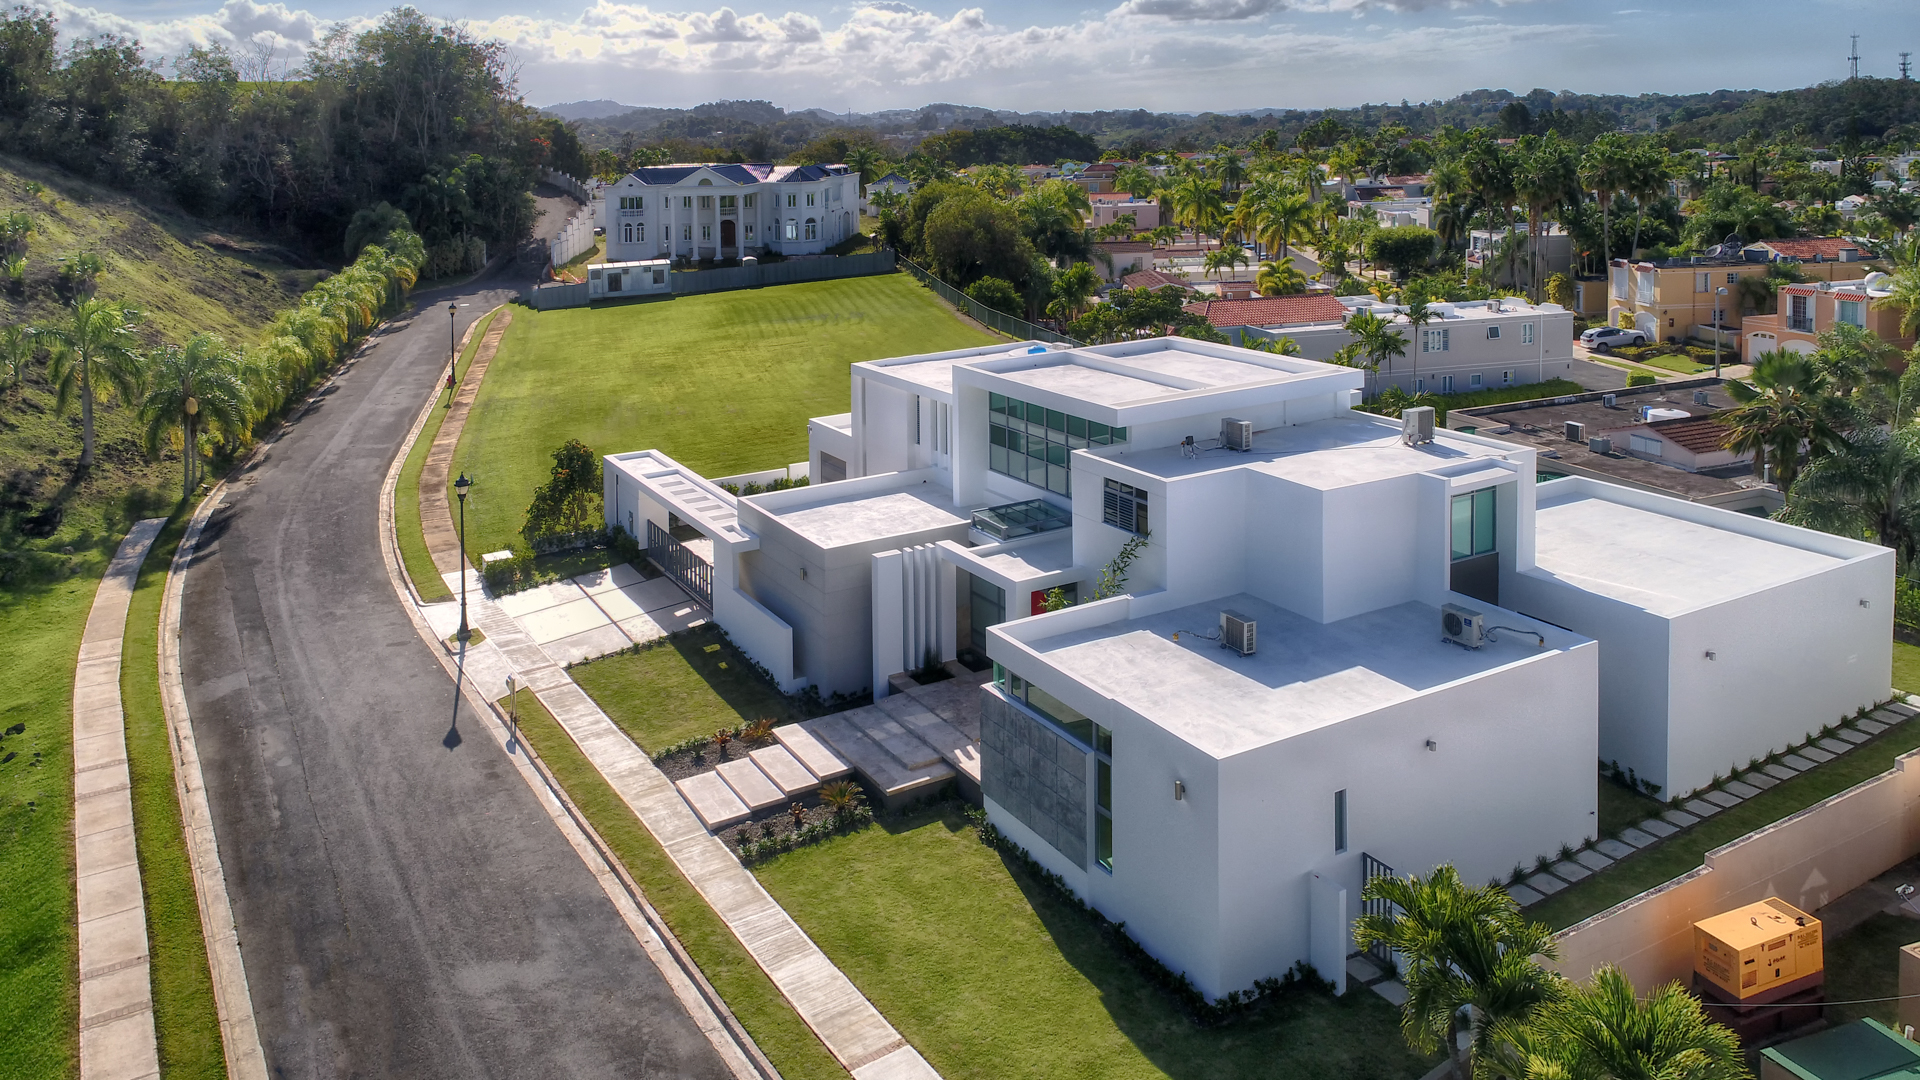 Additional photo for property listing at For Rent Stunning Architectural Estate 168 Calle Tortolla Montehiedra San Juan, Puerto Rico 00926 Puerto Rico